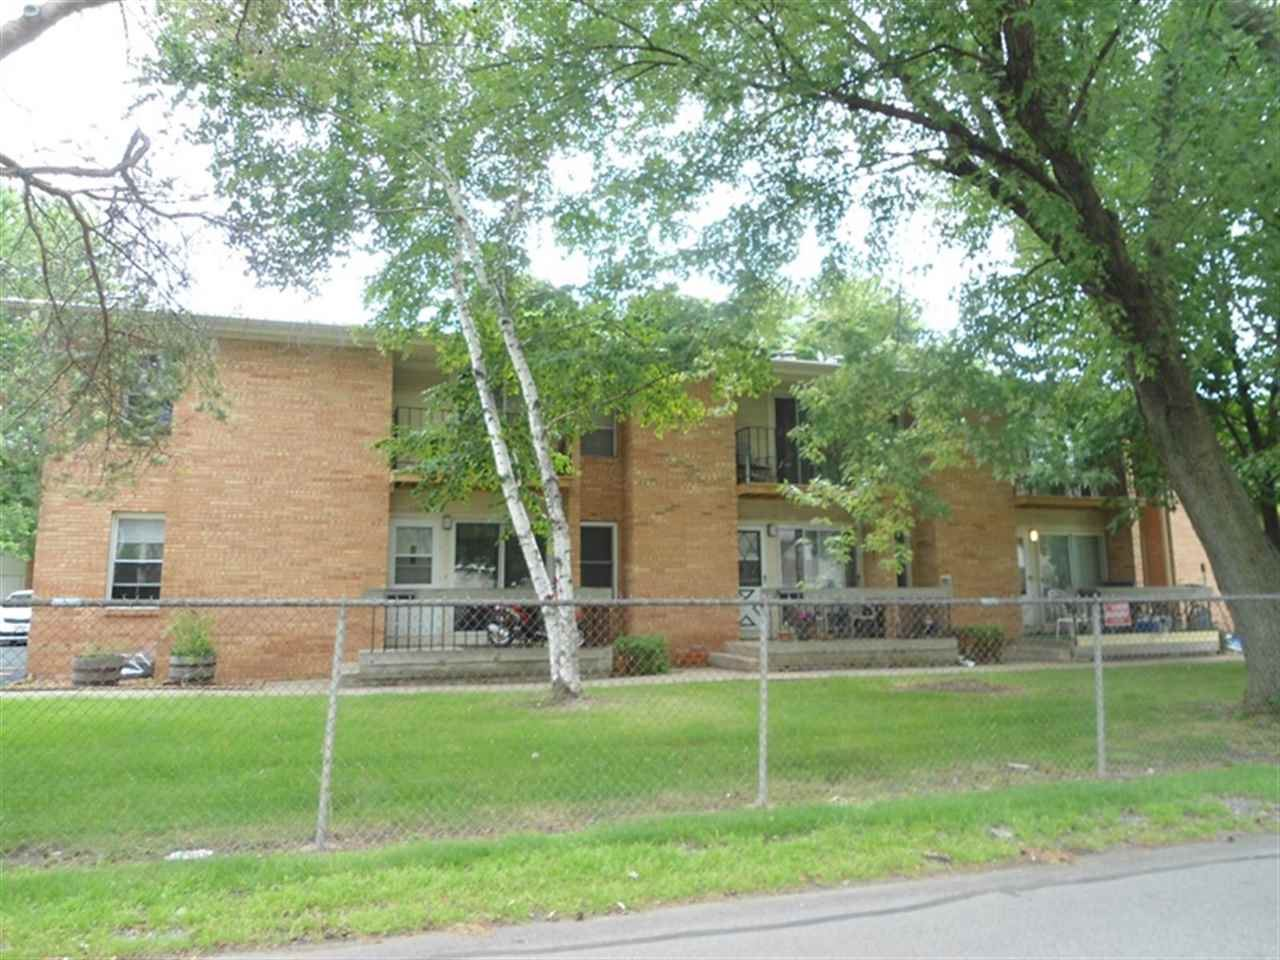 719 W 9TH Avenue, Oshkosh, WI 54902 - MLS#: 50233713